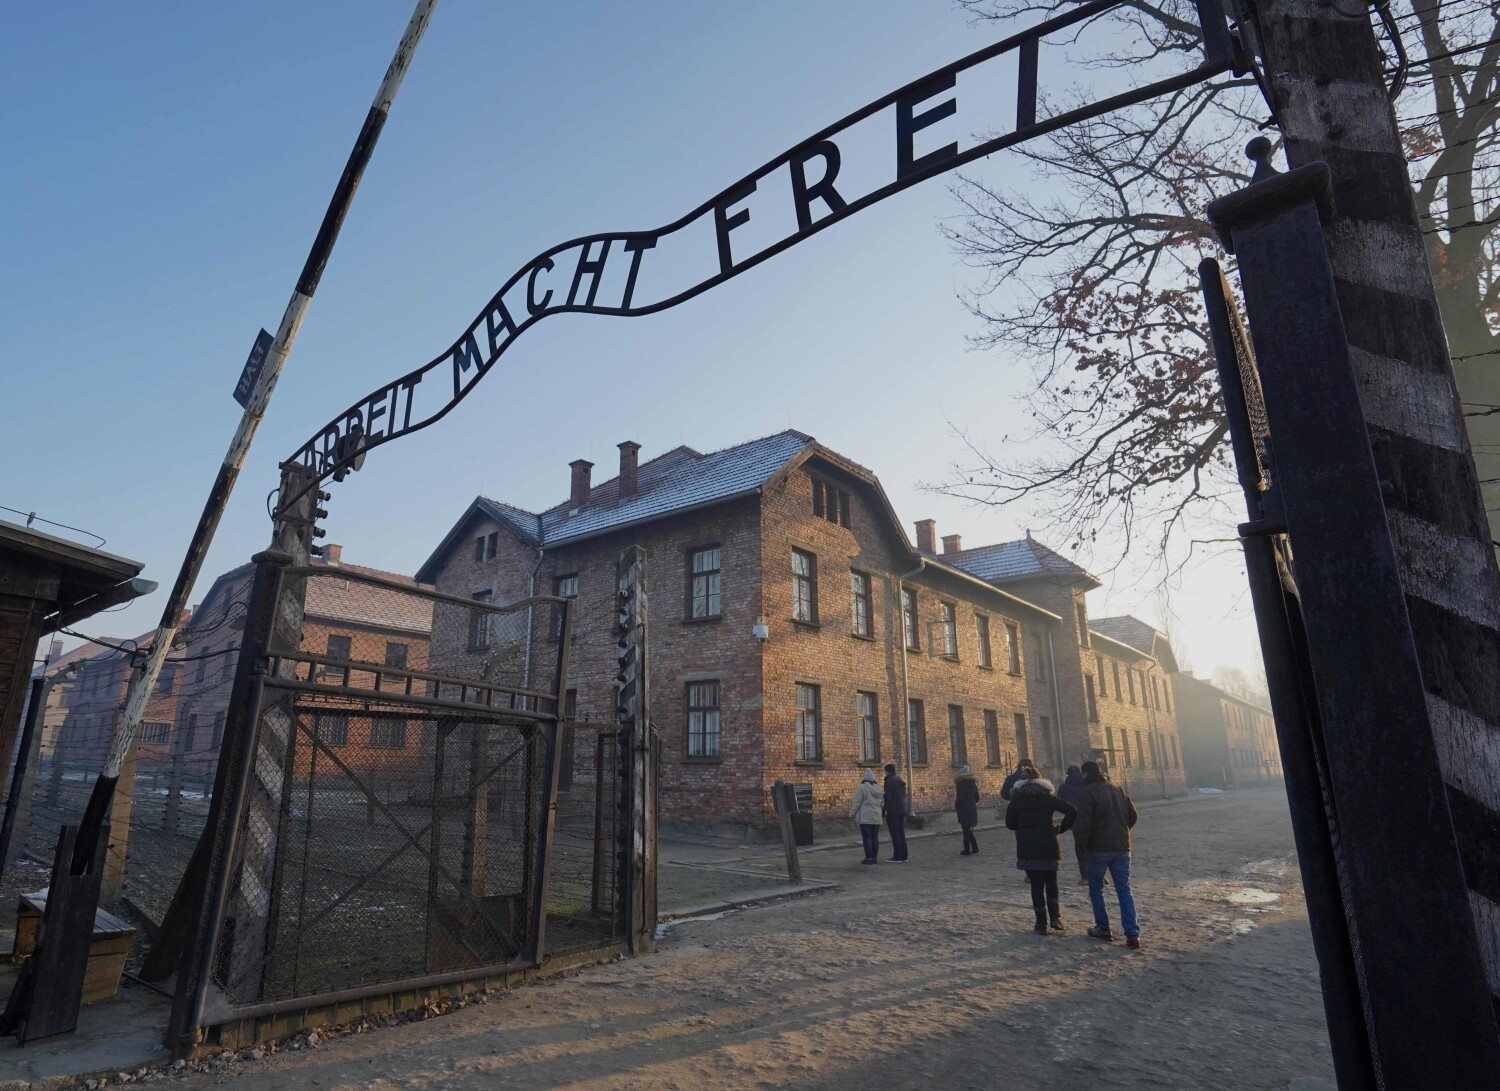 75 years after being freed from Auschwitz, he can't stop going back